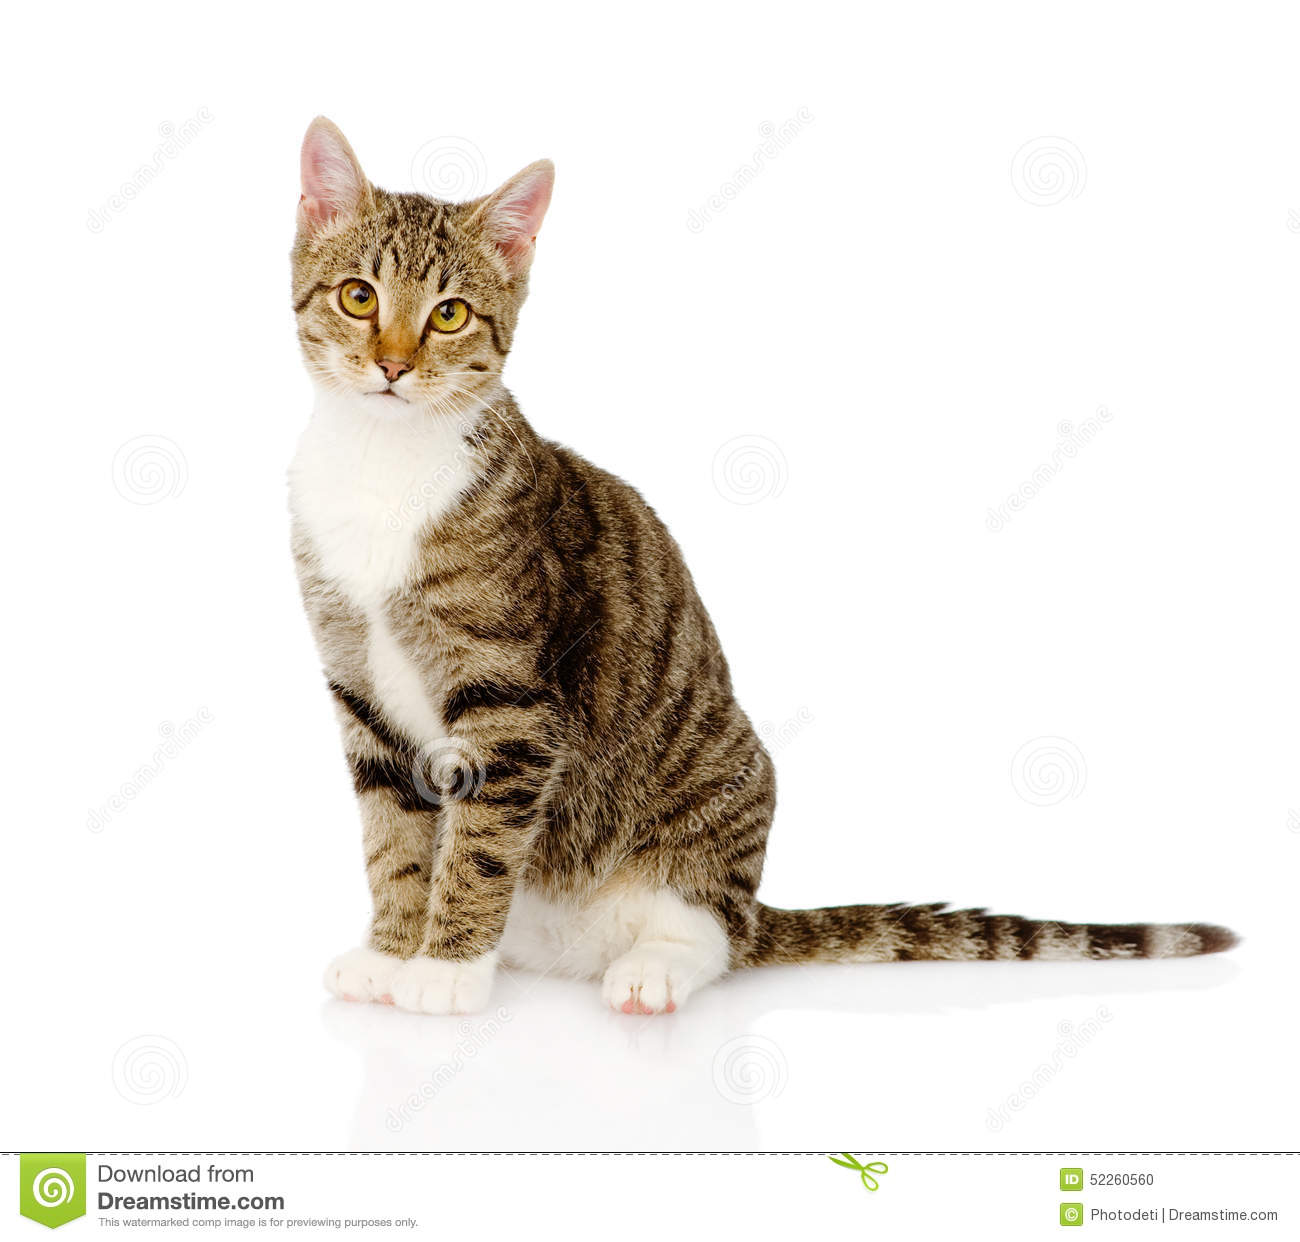 Young Tabby Cat. On White Background Stock Photo - Image: 52260560